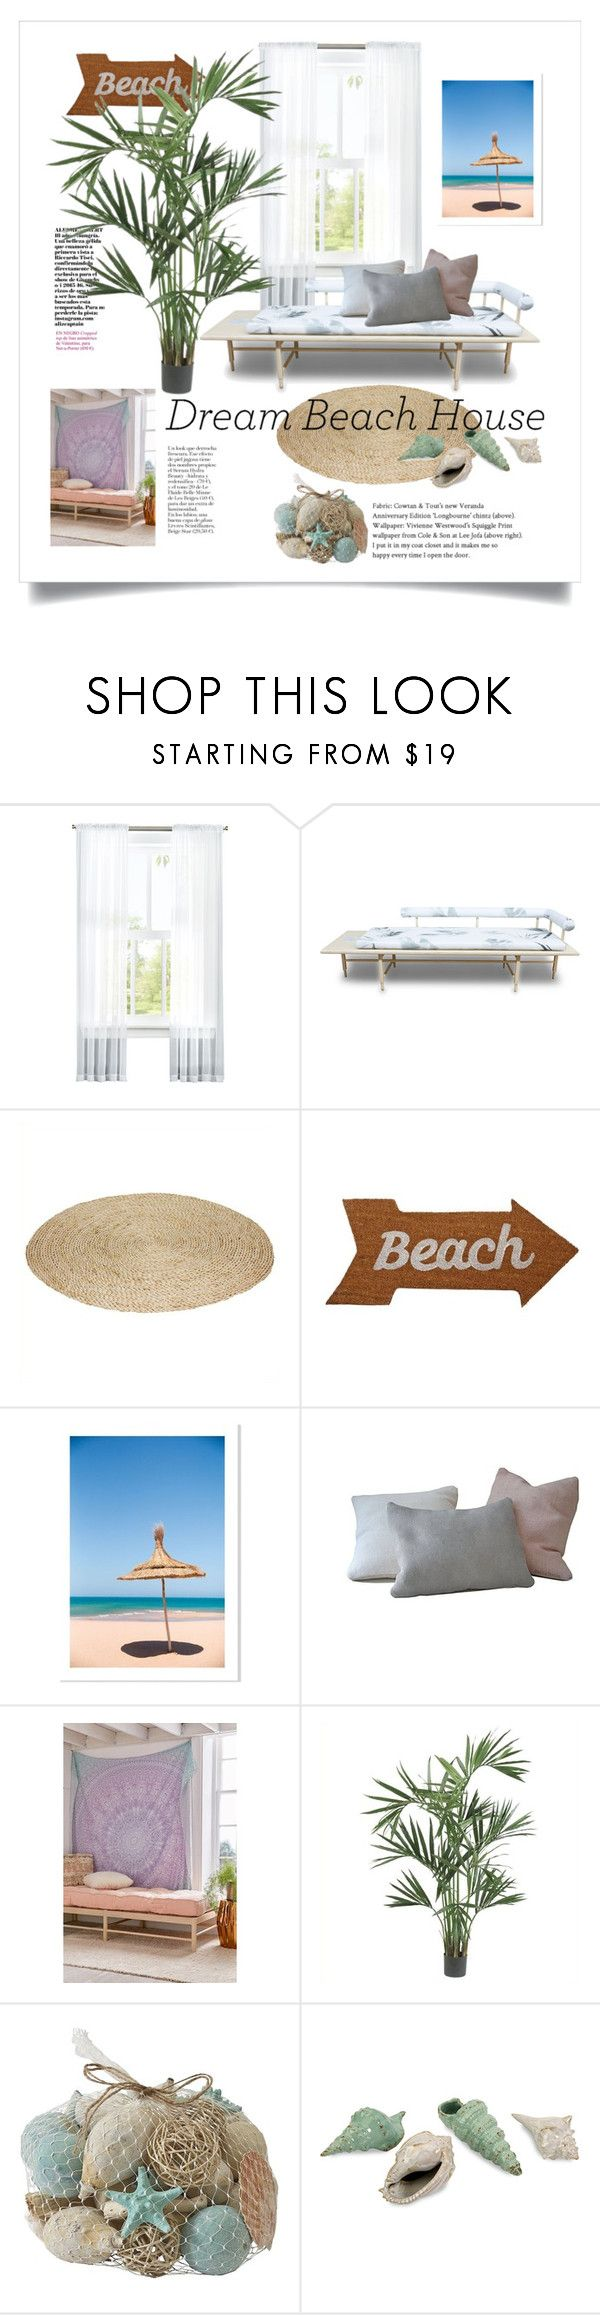 """Dream Beach House"" by lisnahamad ❤ liked on Polyvore featuring interior, interiors, interior design, home, home decor, interior decorating, Volk, Mud Pie, Urban Outfitters and Nearly Natural"